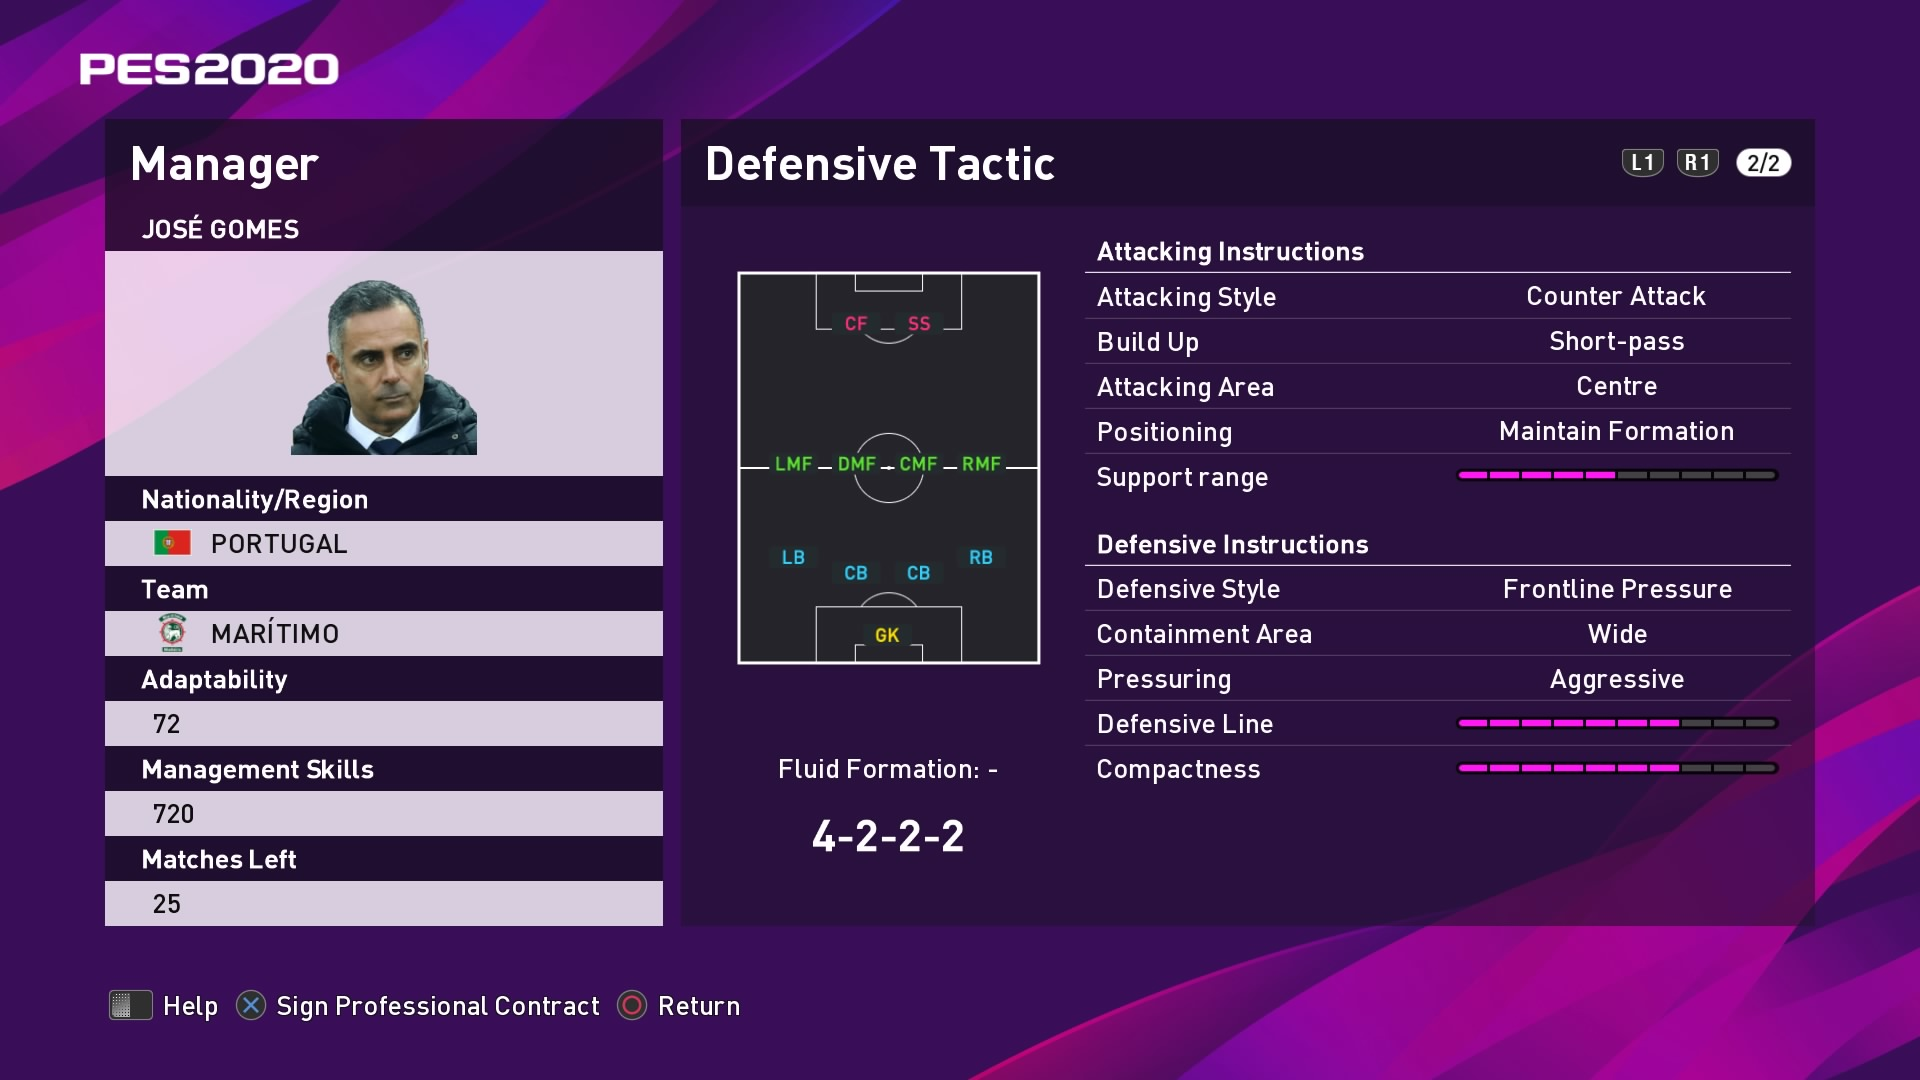 José Gomes Defensive Tactic in PES 2020 myClub